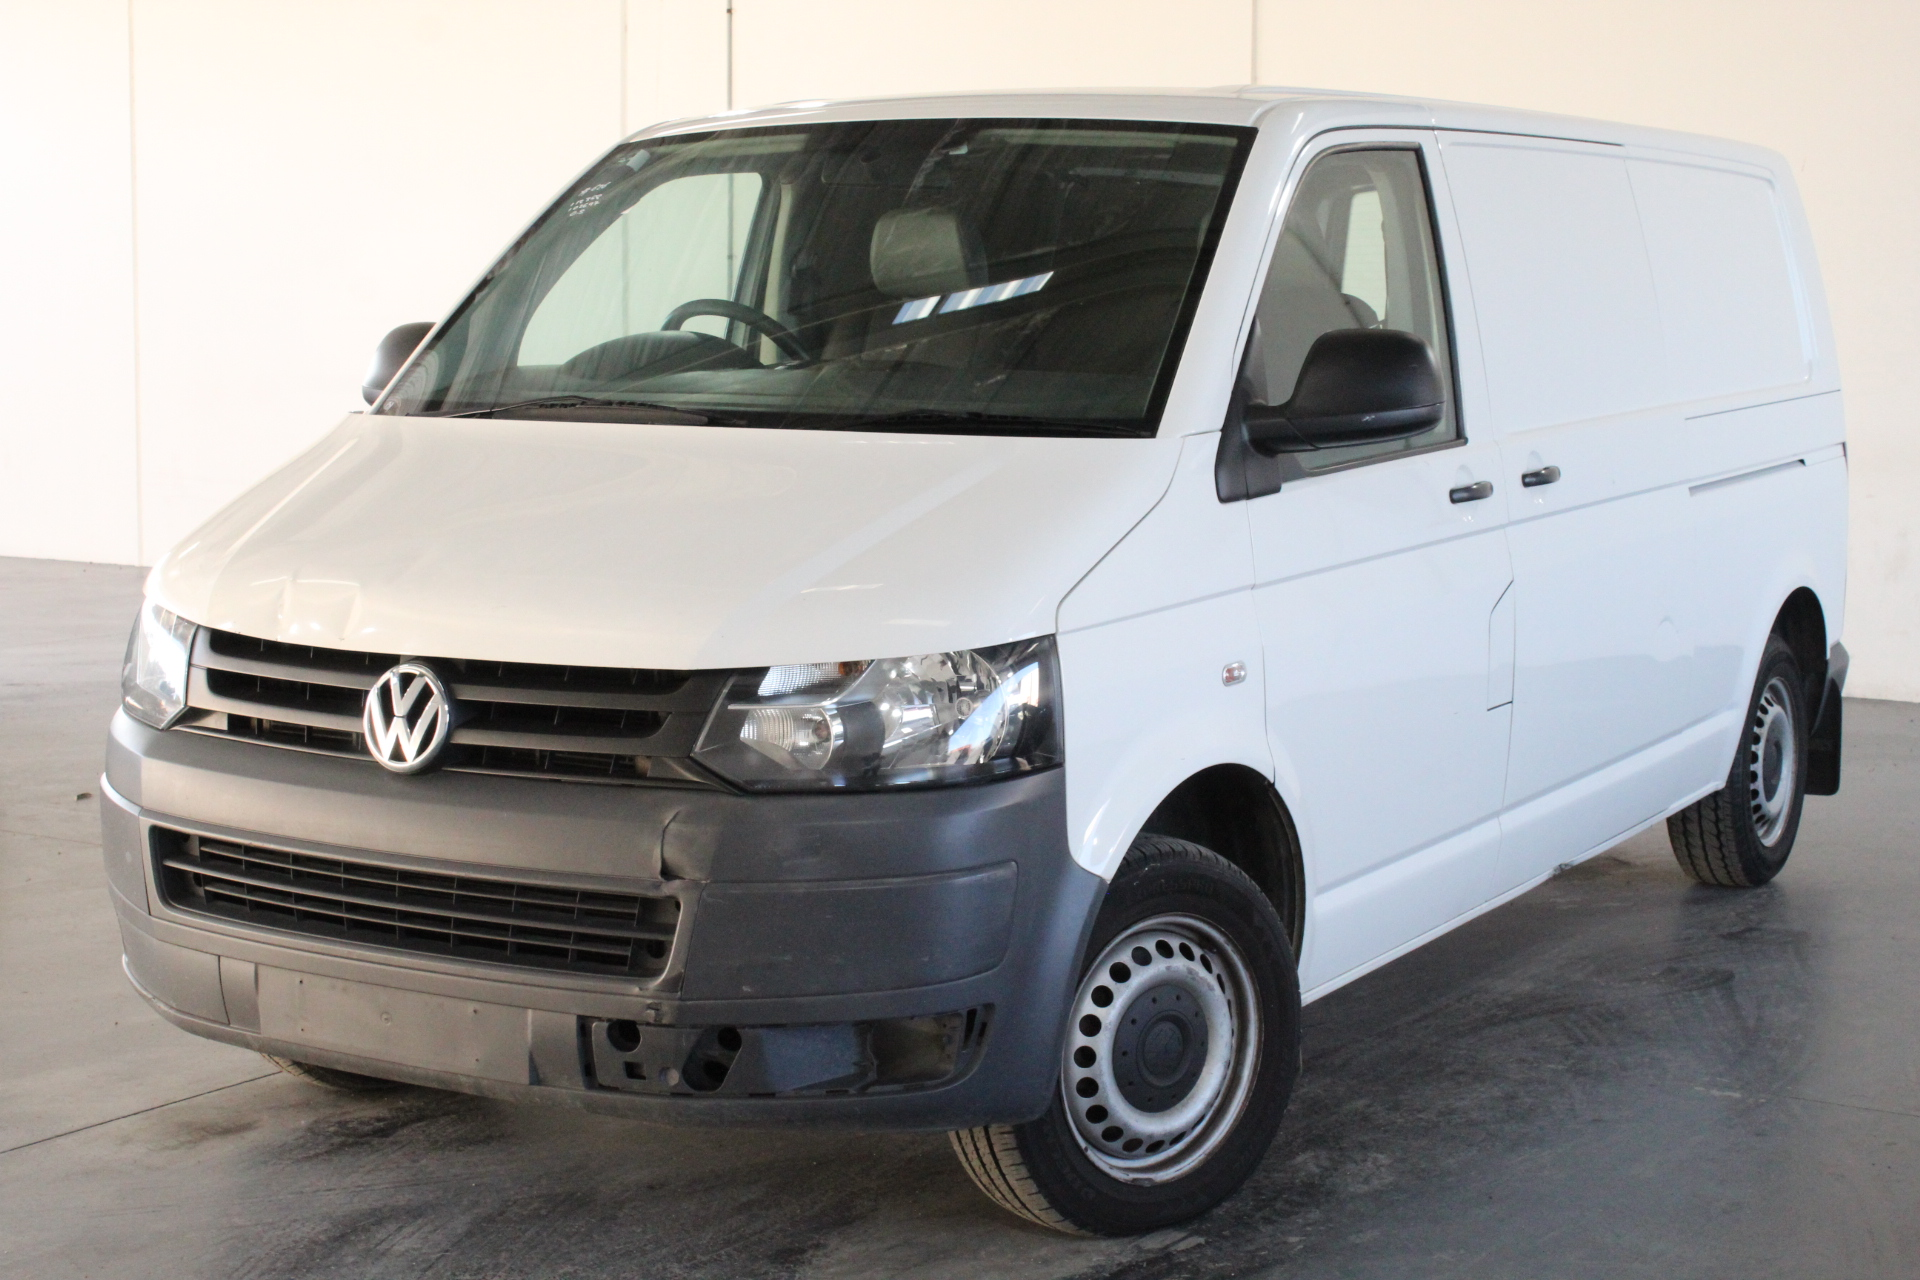 2012 Volkswagen Transporter TDI340 LWB T5 Turbo Diesel Manual Van